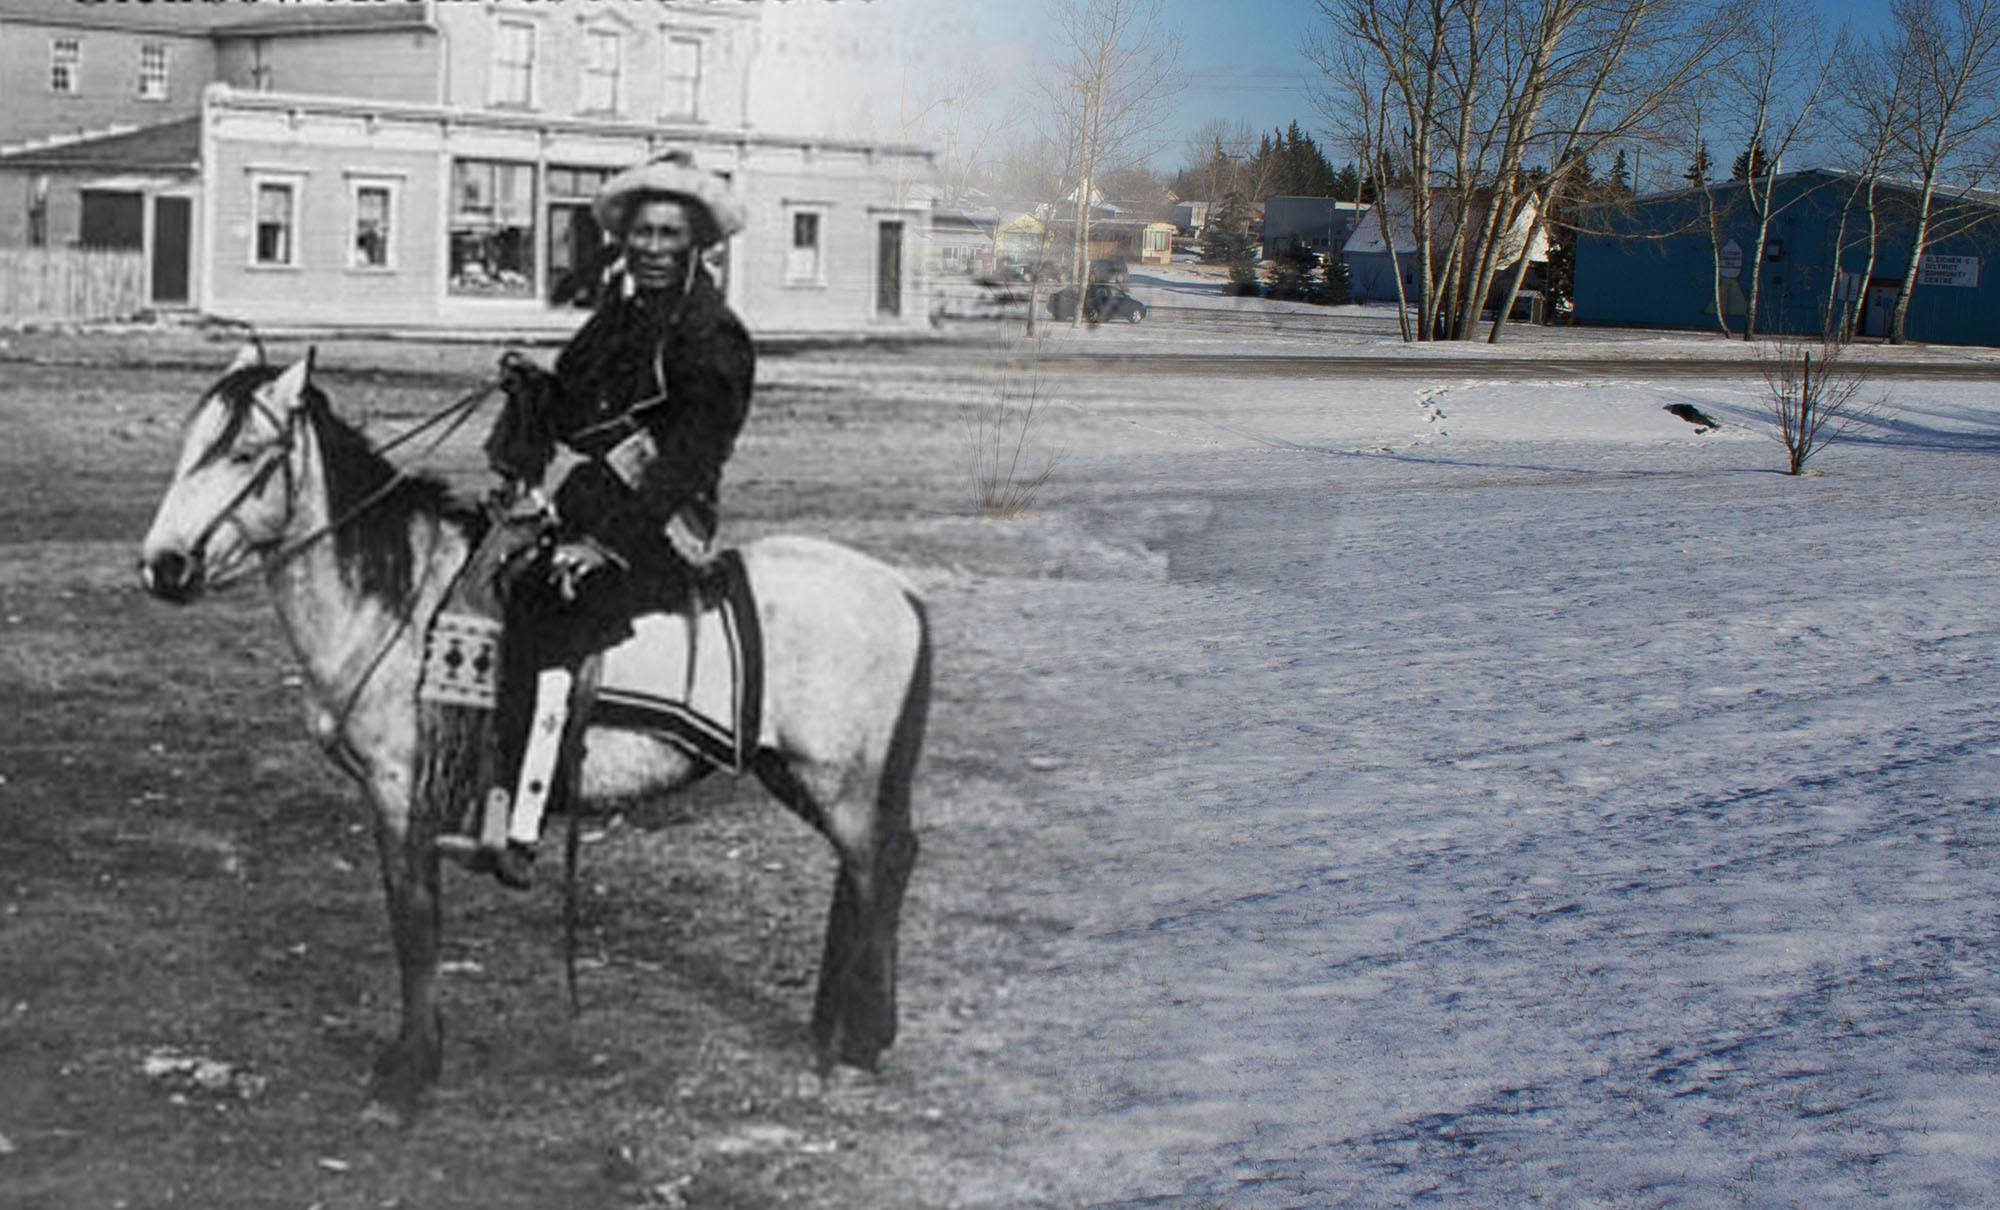 Two Blackfoot people on horseback in front of Beaupre's Pioneer Store in the 1880s (Glenbow Museum and Archives/On This Spot)